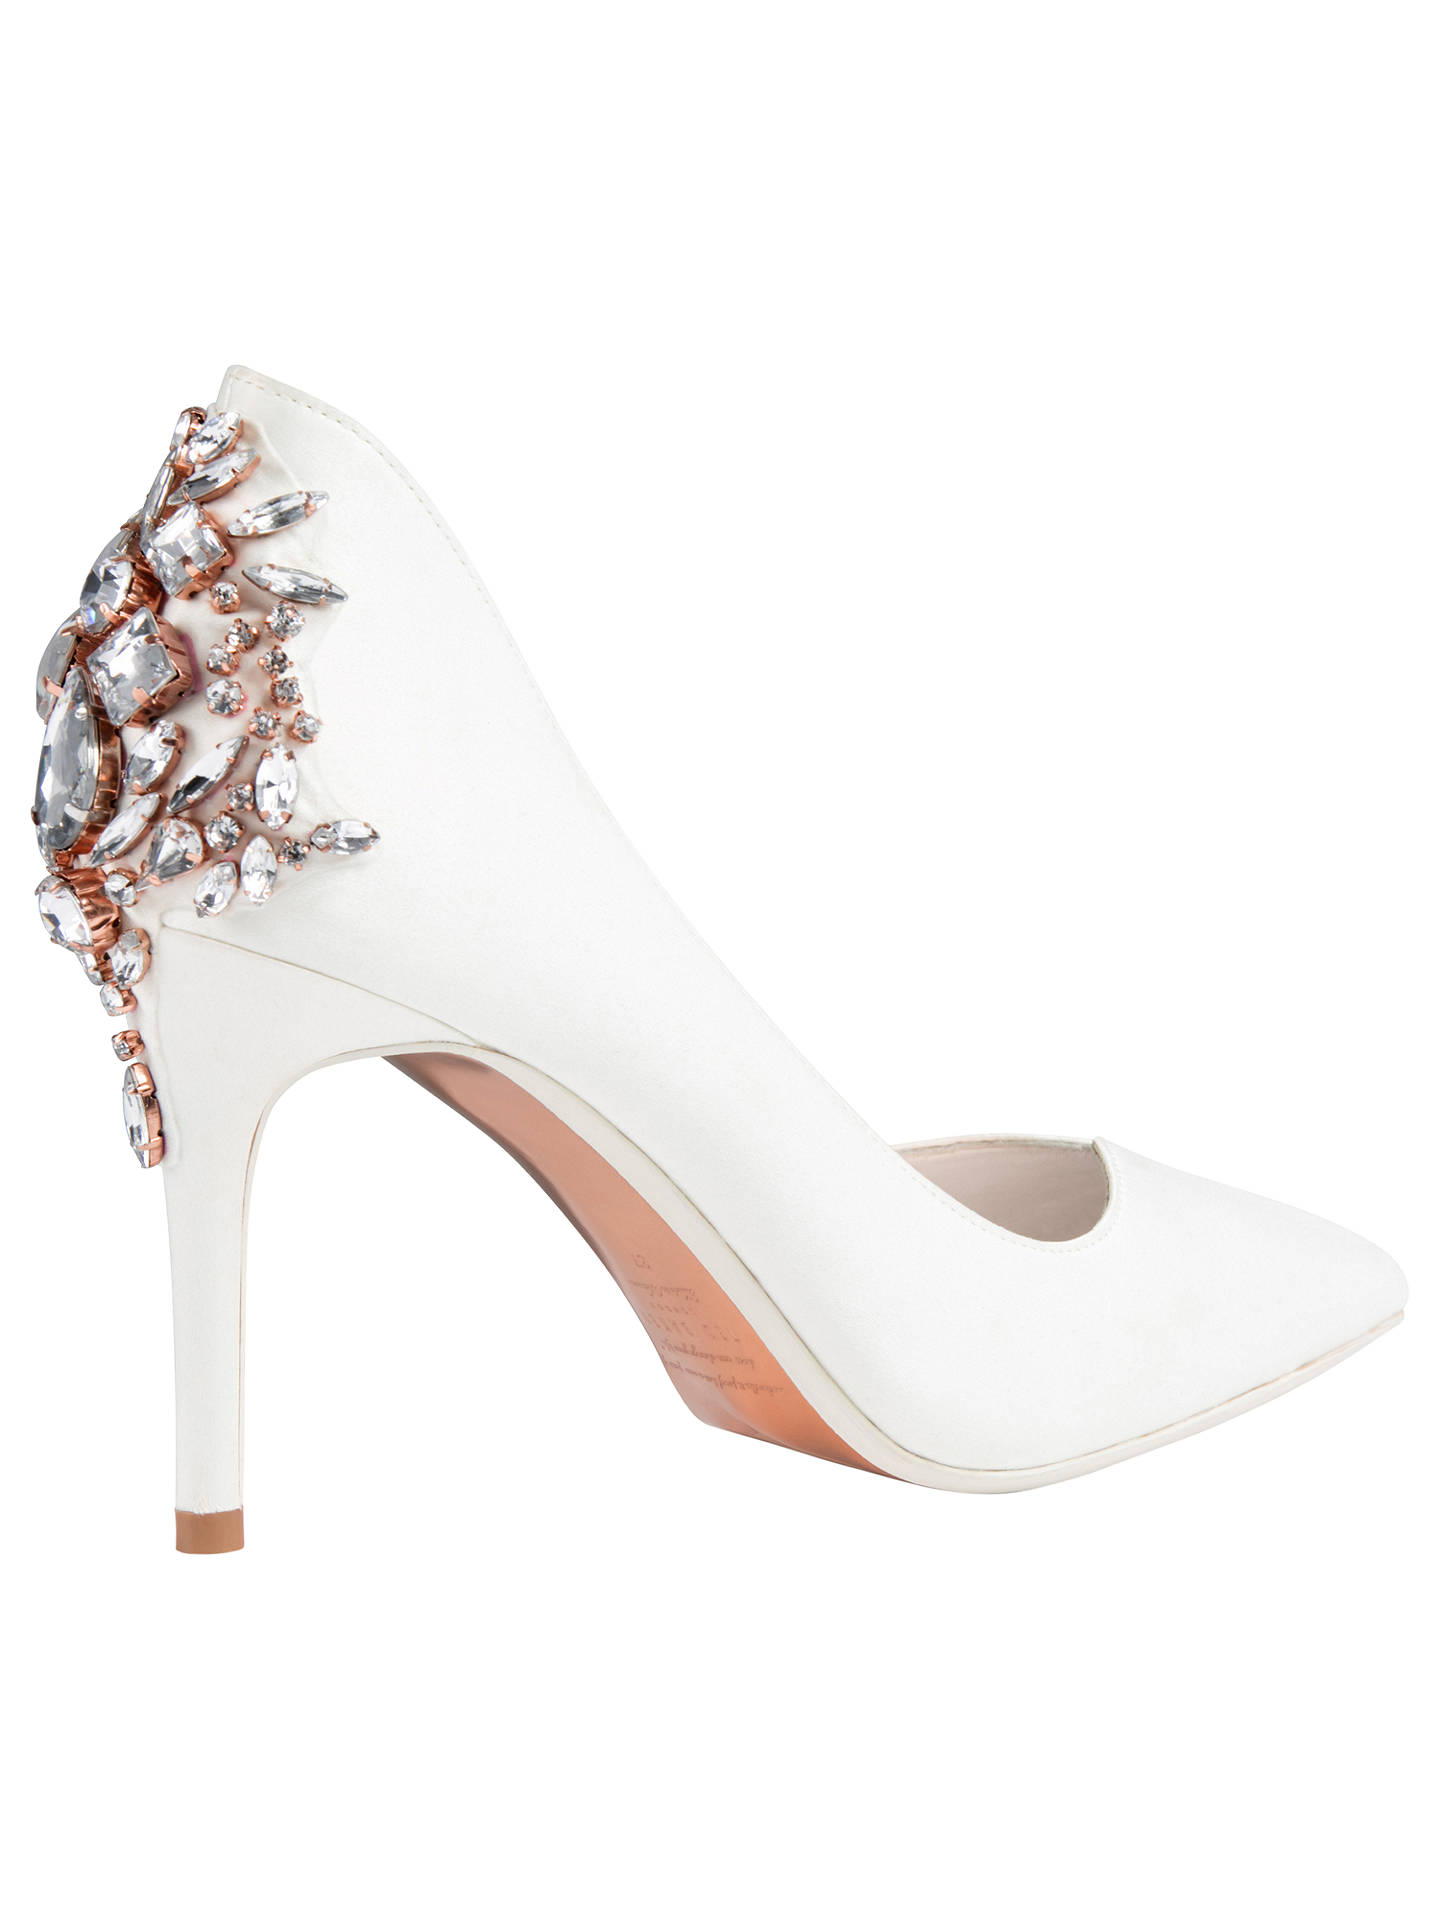 0d1ce60a5d ... Buy Ted Baker Finoula Embellished Court Shoes, Ivory, 4 Online at  johnlewis.com ...